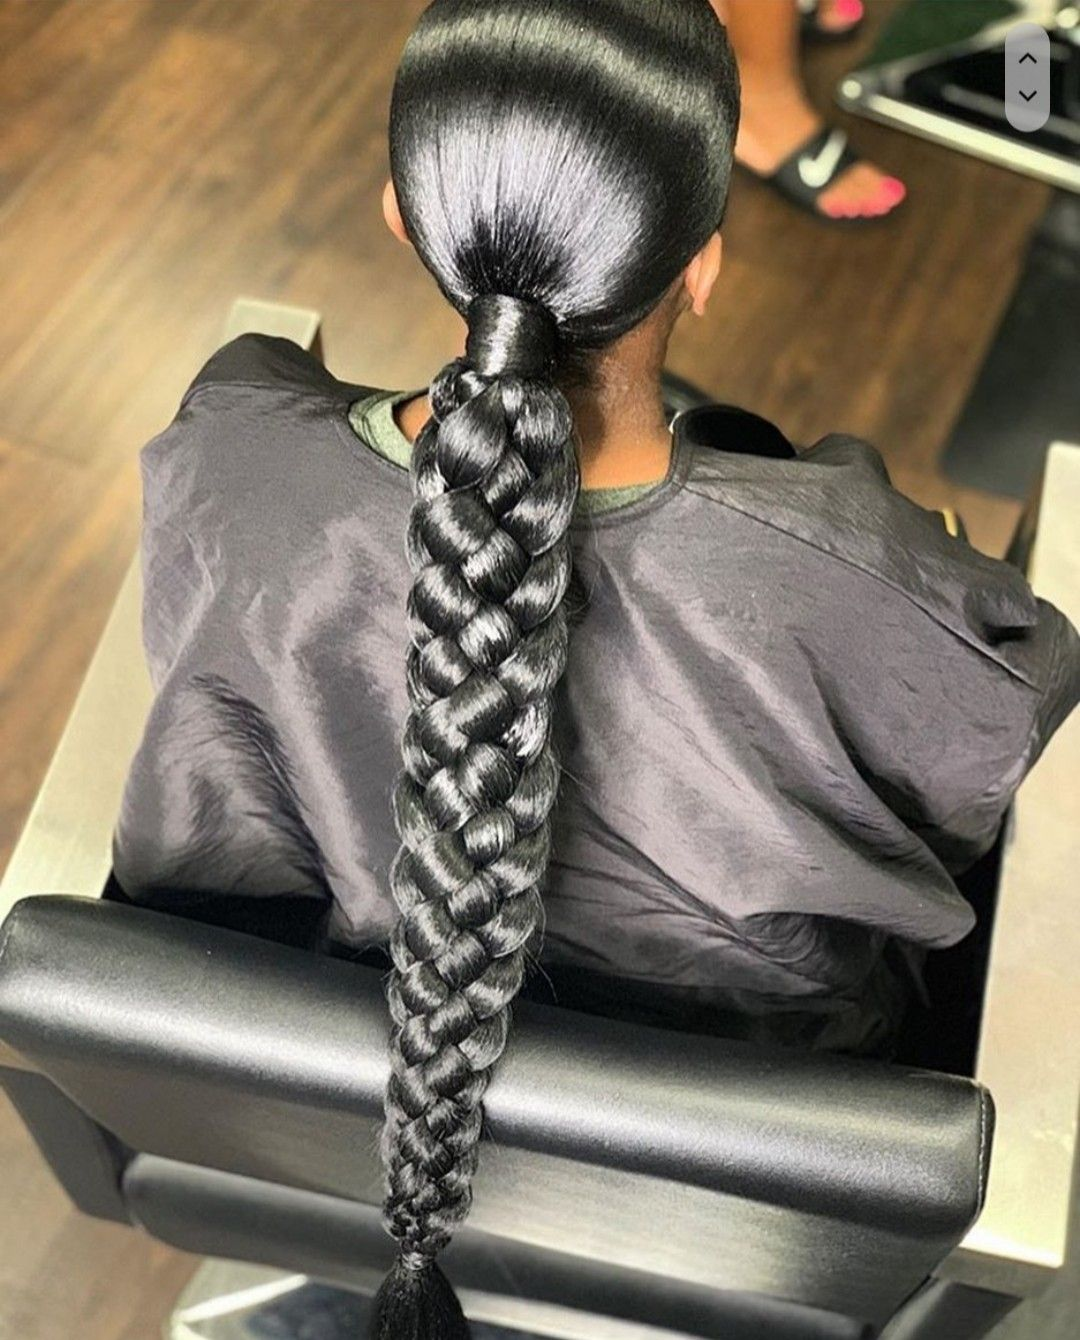 Braided ponytail hairstyles image by fmoig: dopegurlsyd ...